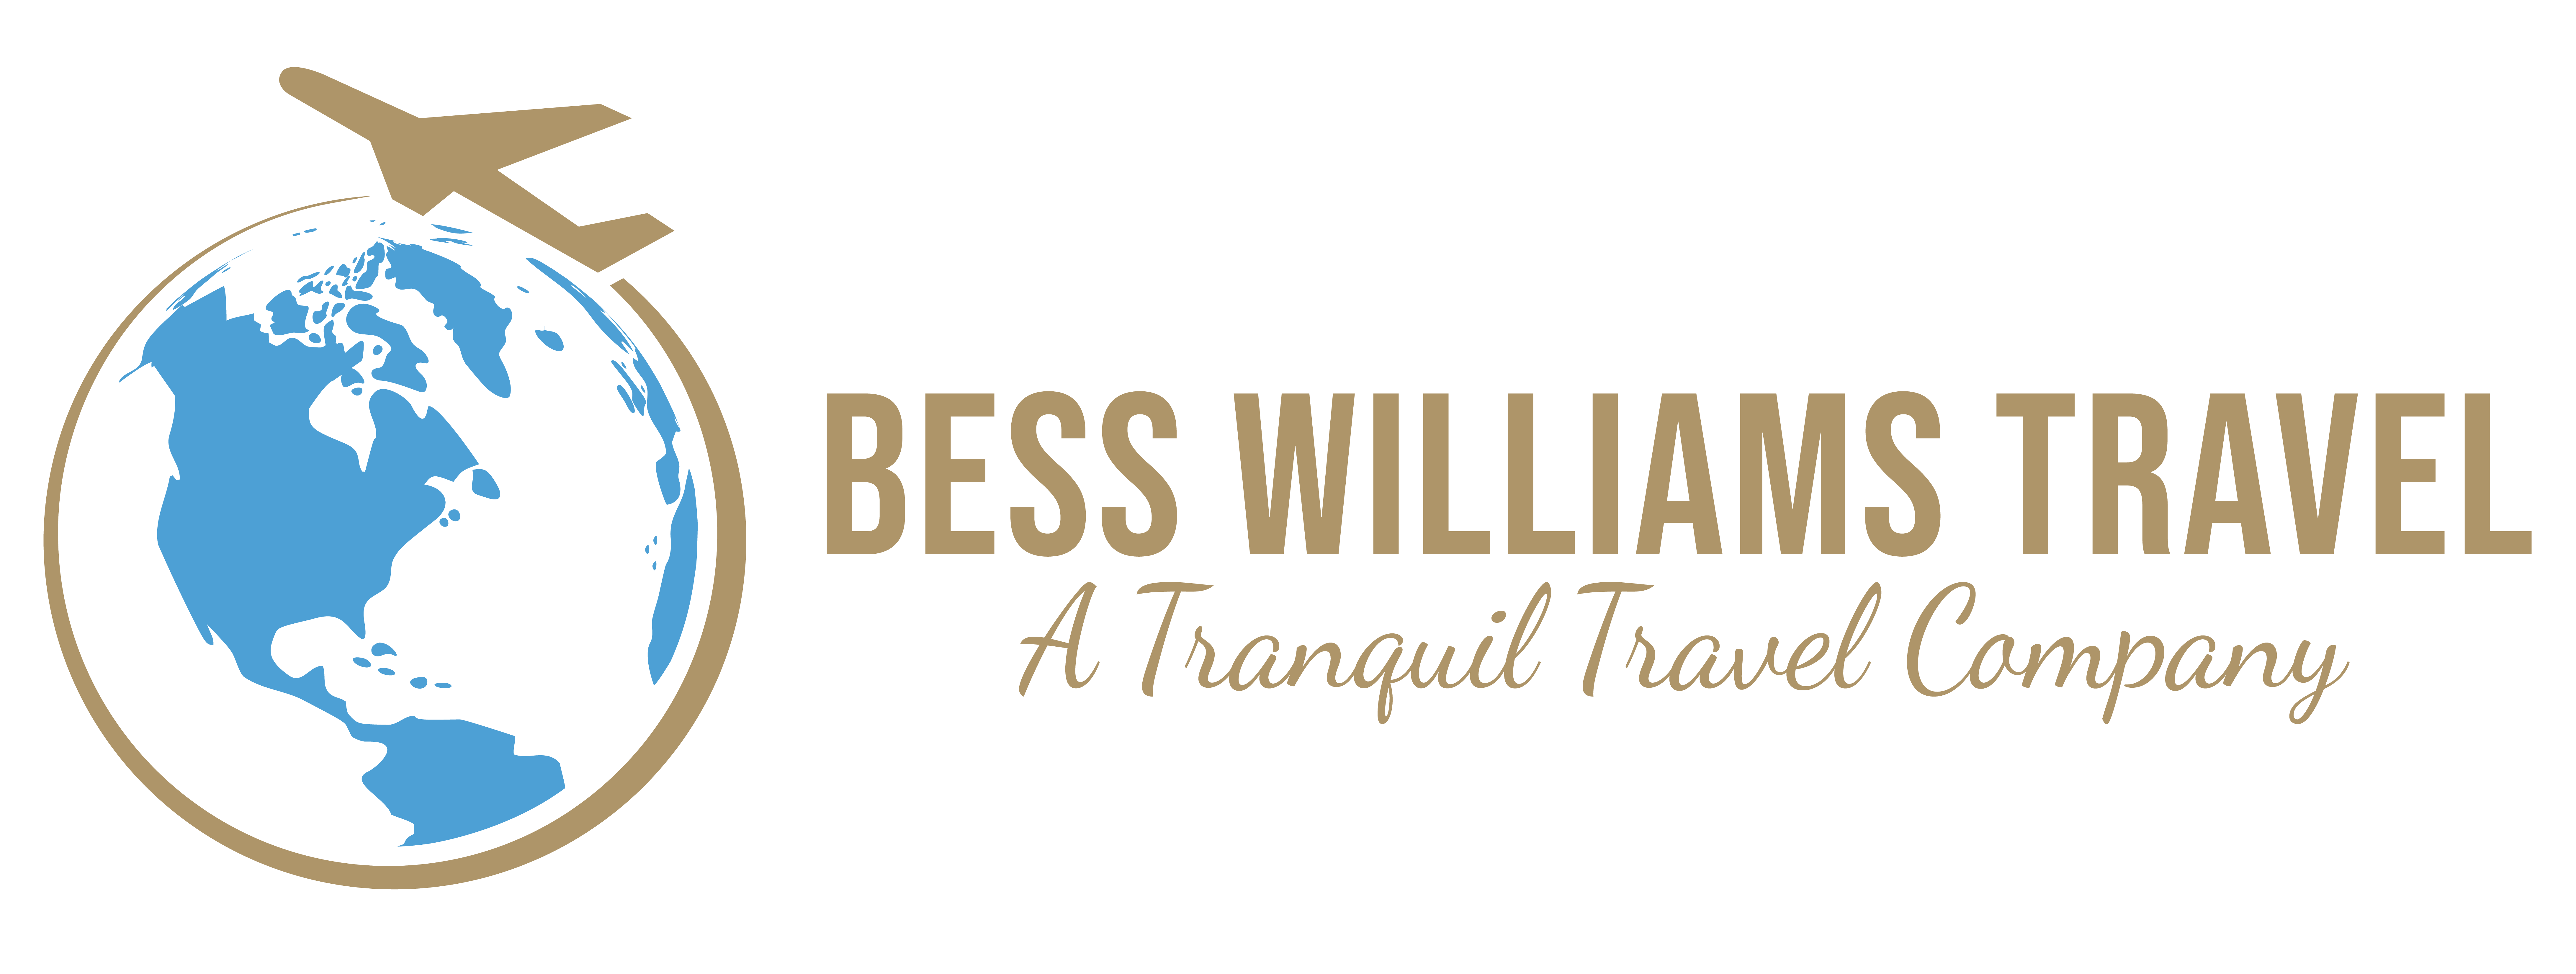 Bess Williams Travel